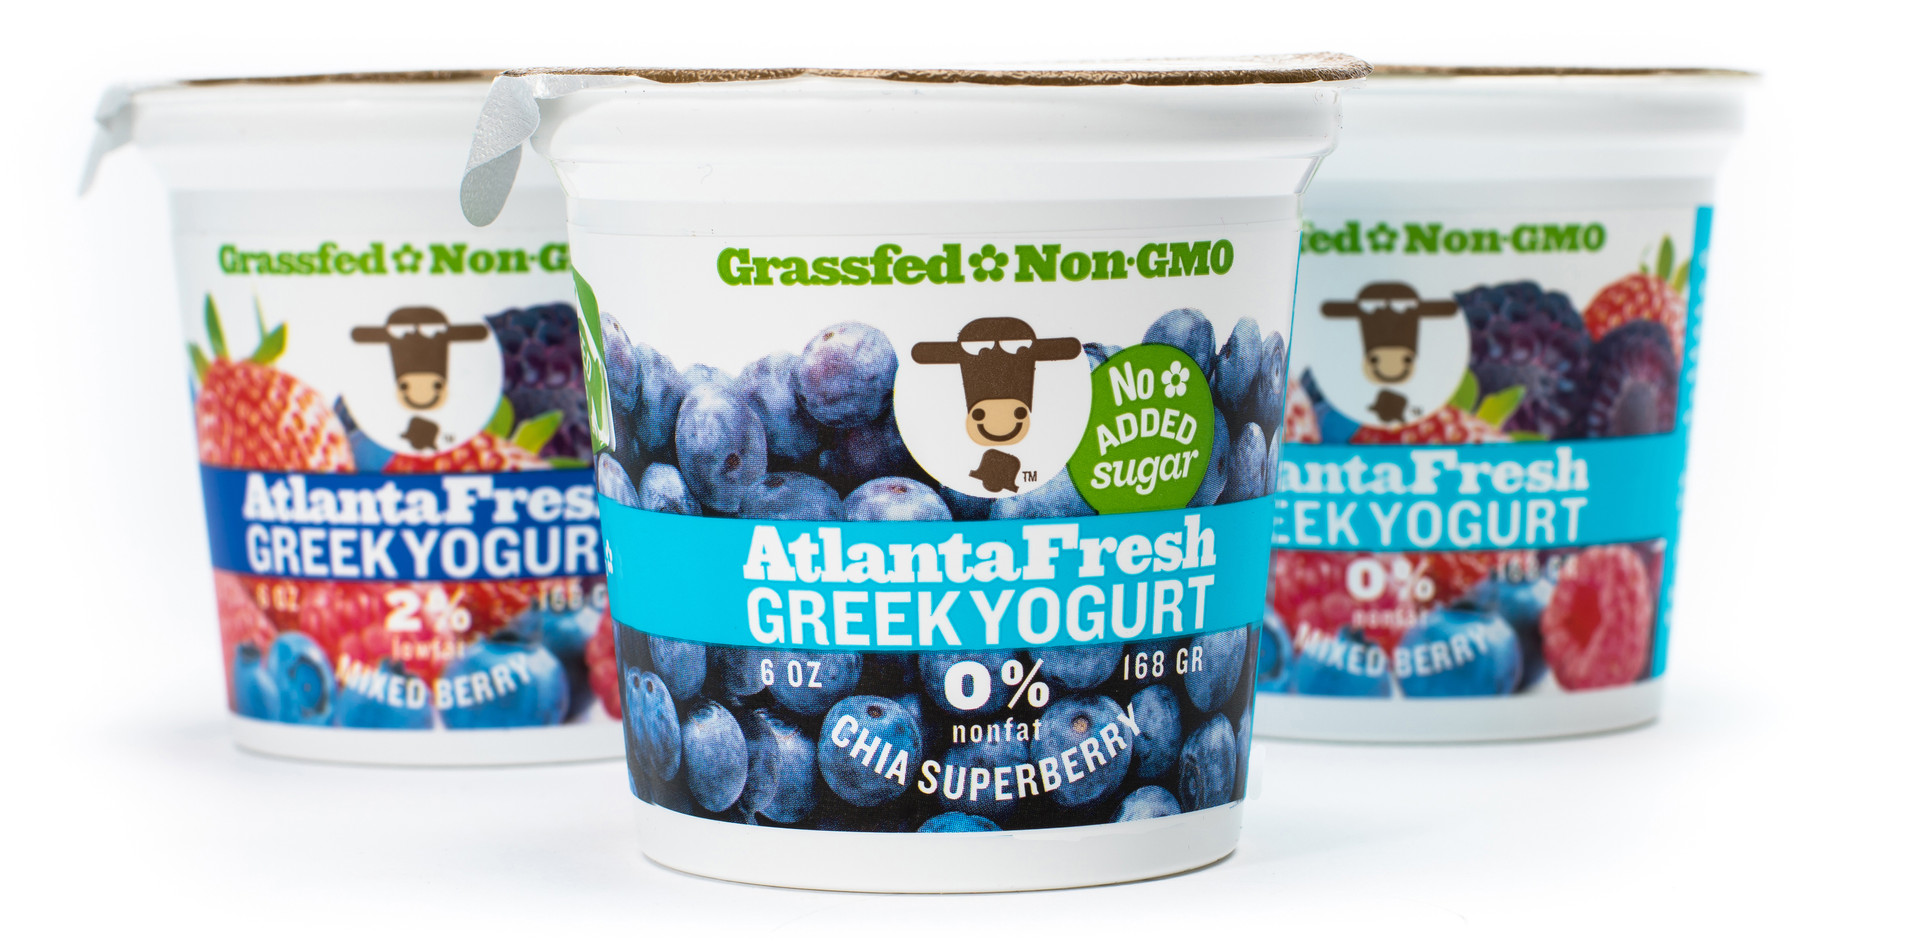 Staying ahead of trends is key in keeping brands relevant.The original AtlantaFresh Greek Yogurt packaging required a refresh in 2015 due to new FDA nutrition panels. A balance was struck between retaining the fledgling brand's identifying features and the new requirements. The brand's smiling cow and signature light blue, dark blue, red color coding was unique since 2008. Not used by any other brand at the time, we retained these key features while adding new messaging. The fresh red and blue color system served the brand well for 10 years.